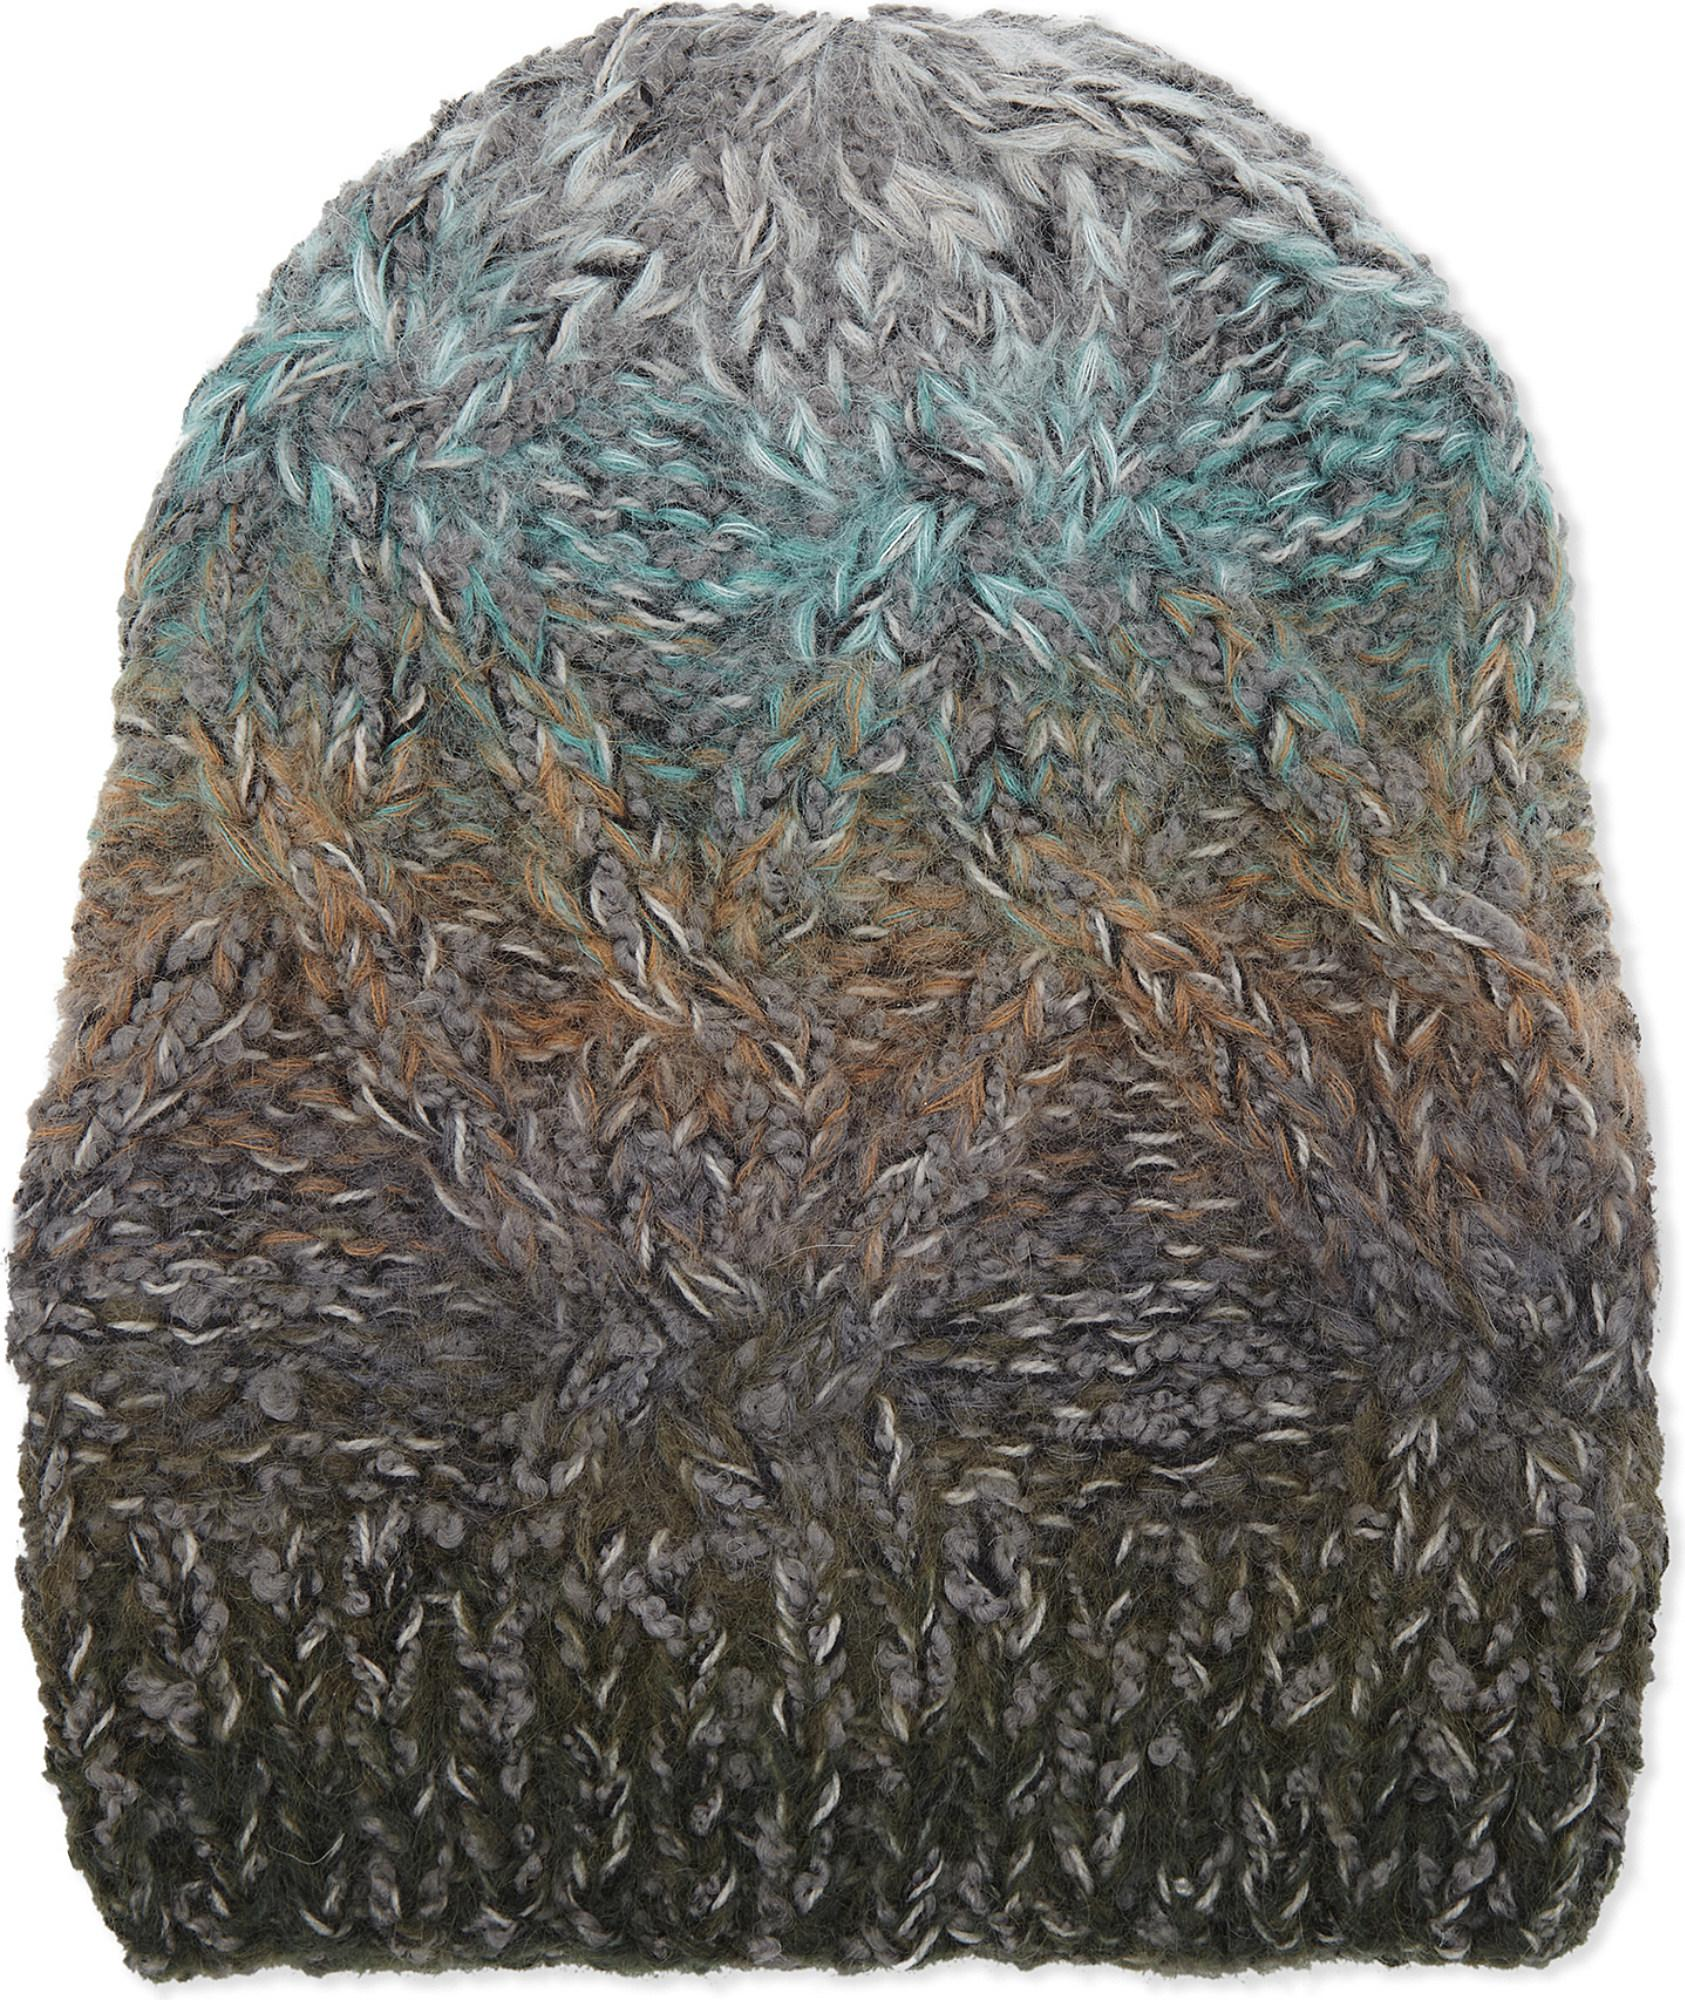 284ff68bf2b Lyst - Missoni Ombré Irregular Cable Knit Wool Beanie in Gray for Men